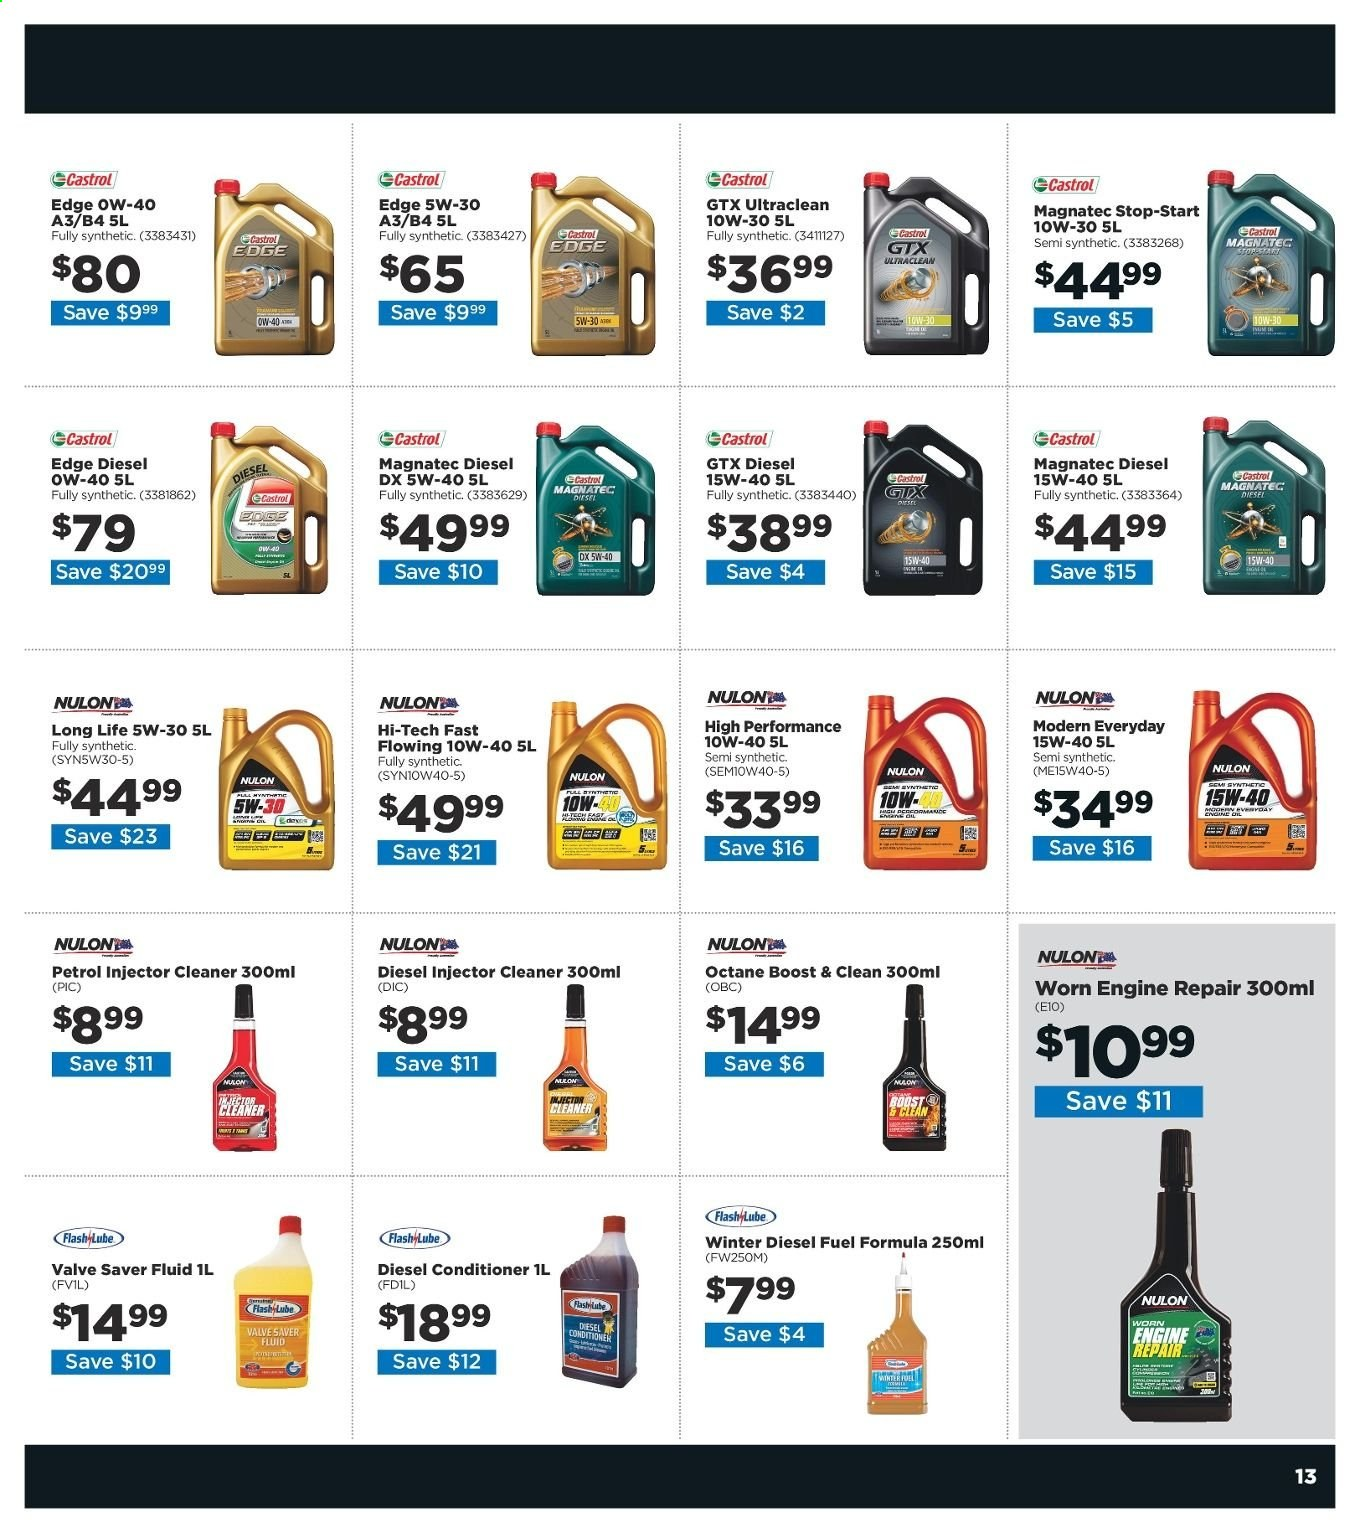 Repco catalogue and weekly specials 23 5 2019 - 2 6 2019 | Au